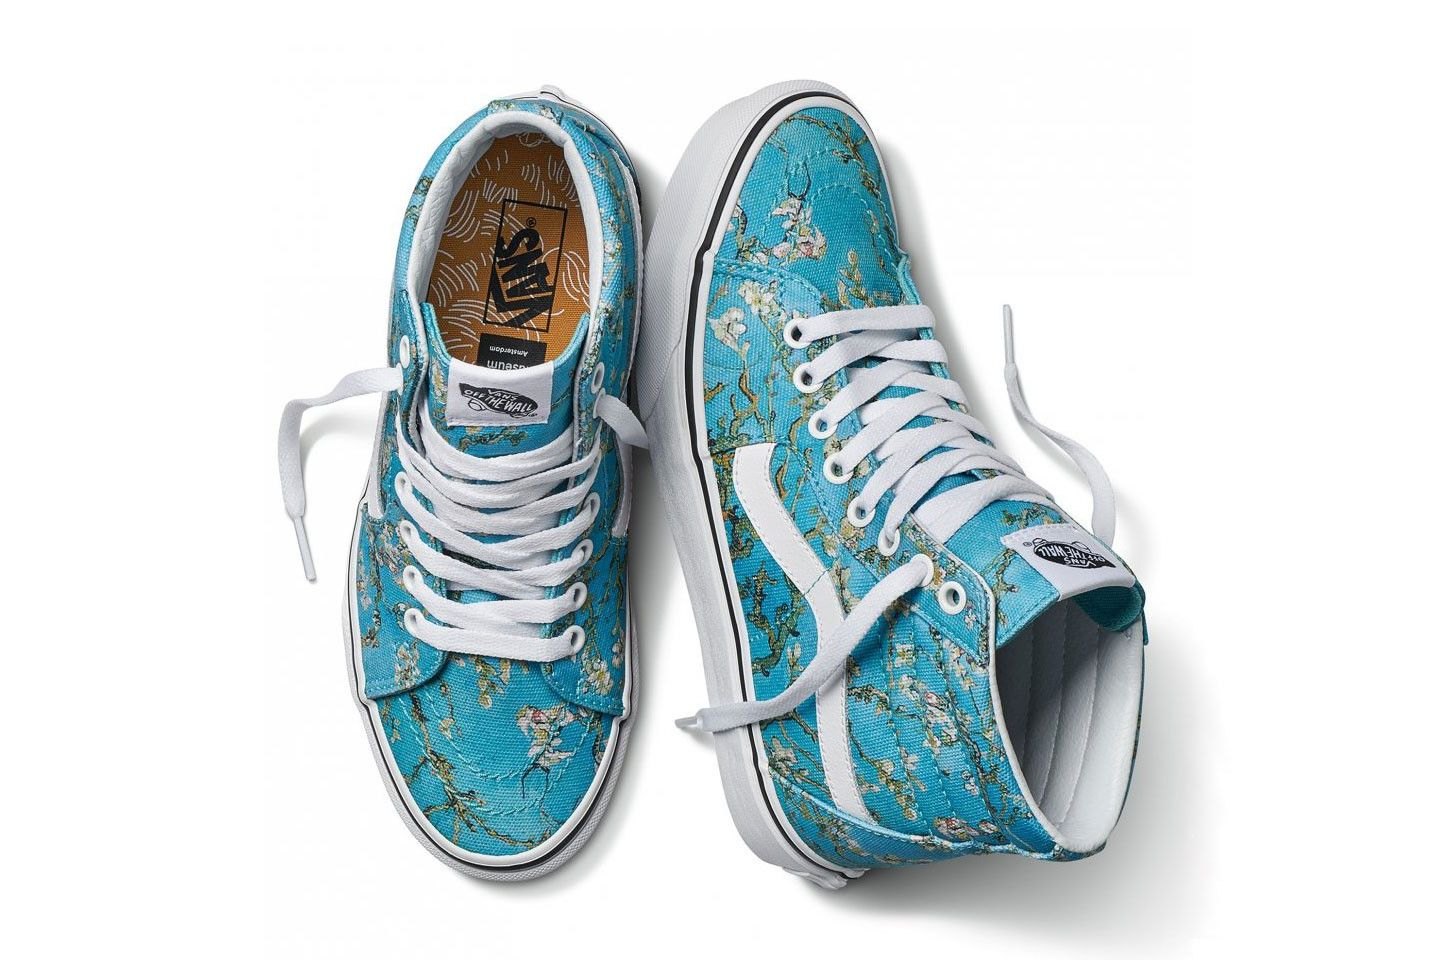 ccdfc3dacd vincent van gogh museum vans collaboration artwork sneaker shoe sk8 hi blue  white almond blossom flower